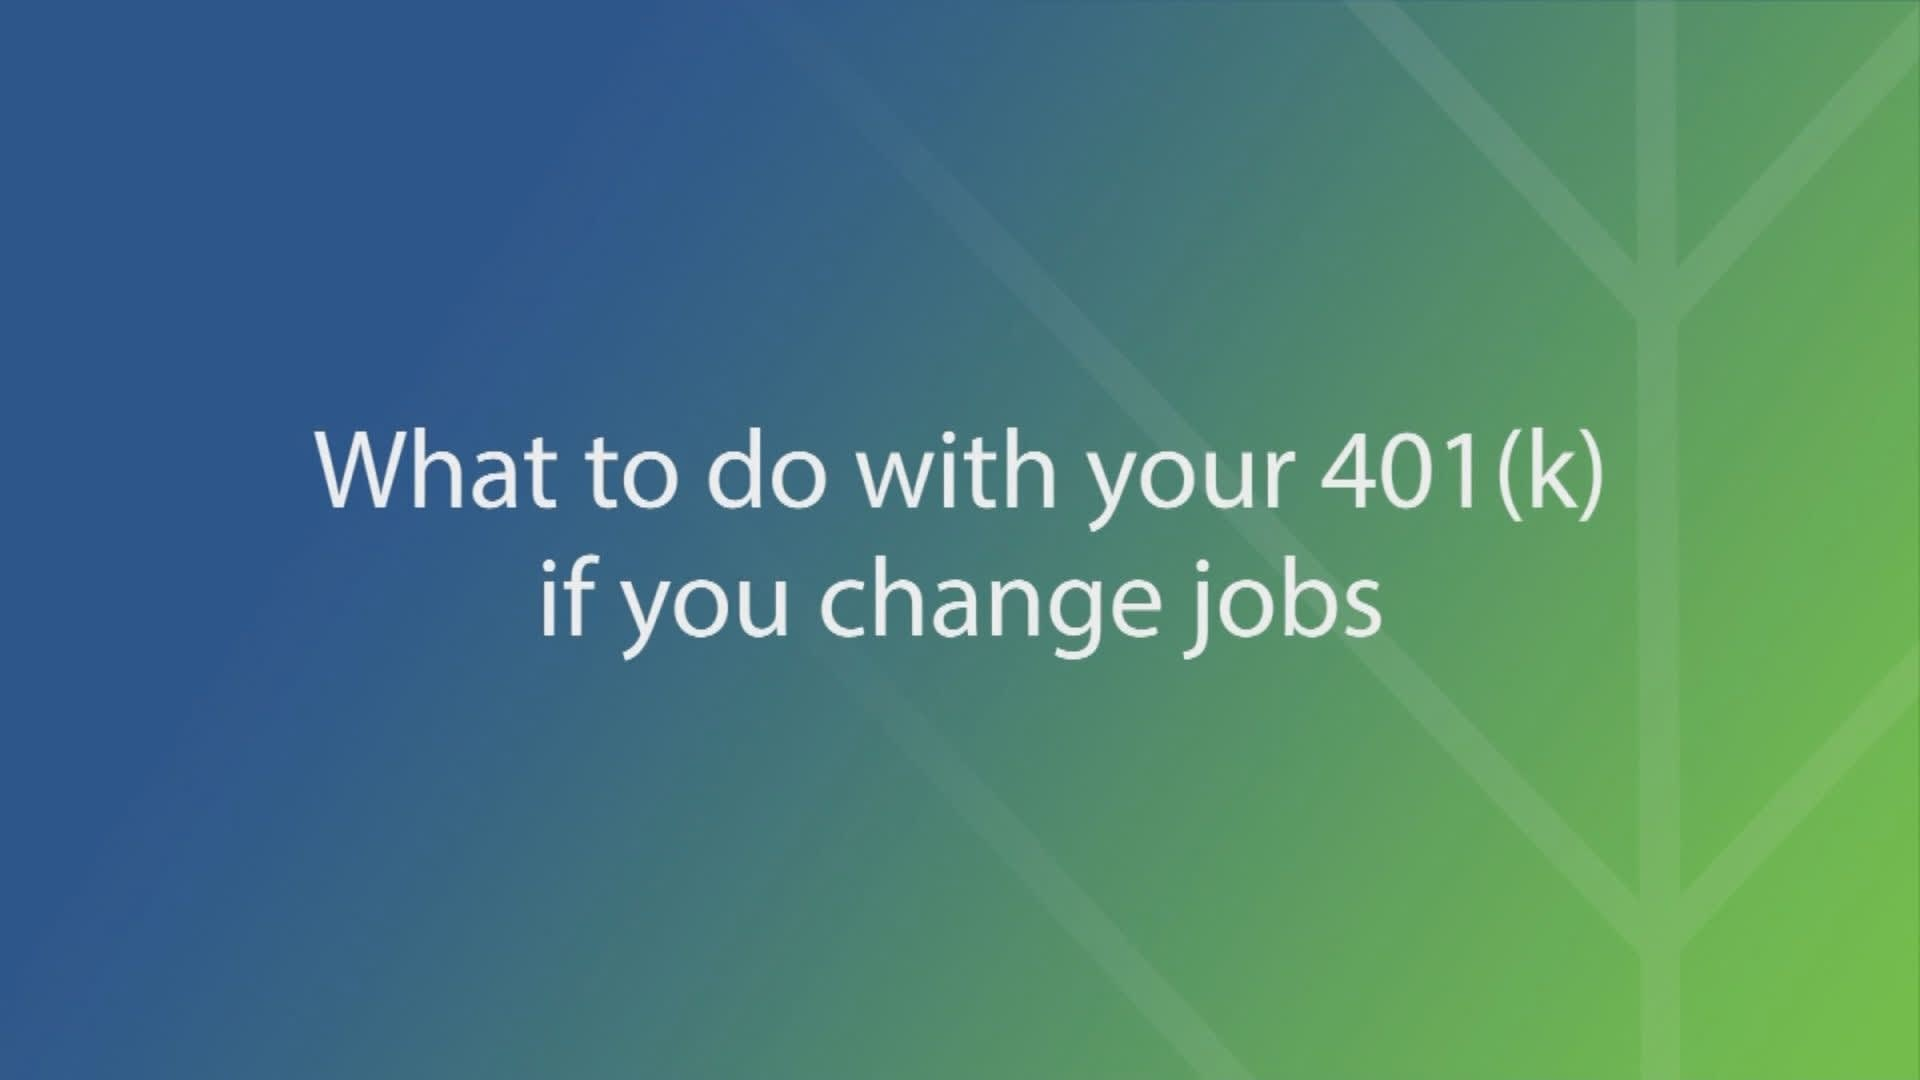 Not sure what to do with your 401(k) if you've changed jobs? Here are your options